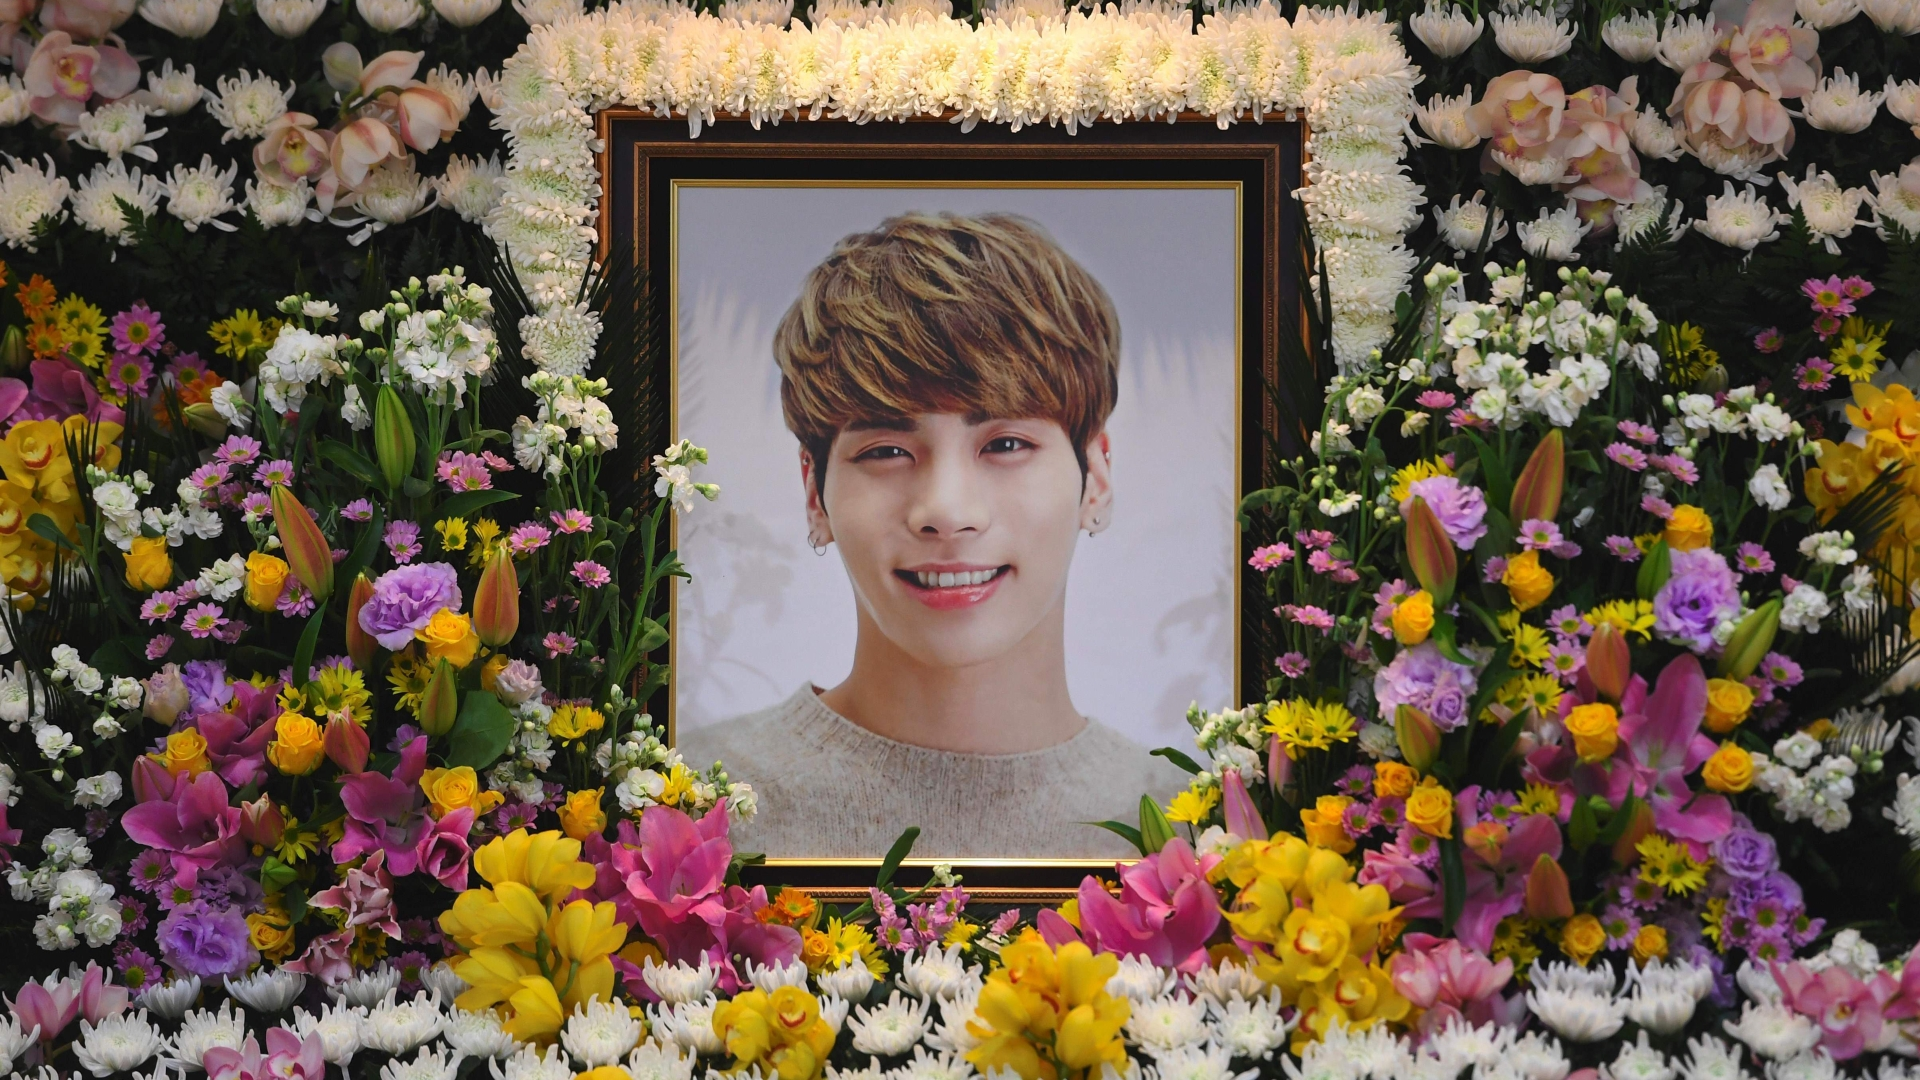 K-pop fans mourn death of SHINee's Jonghyun in apparent suicide